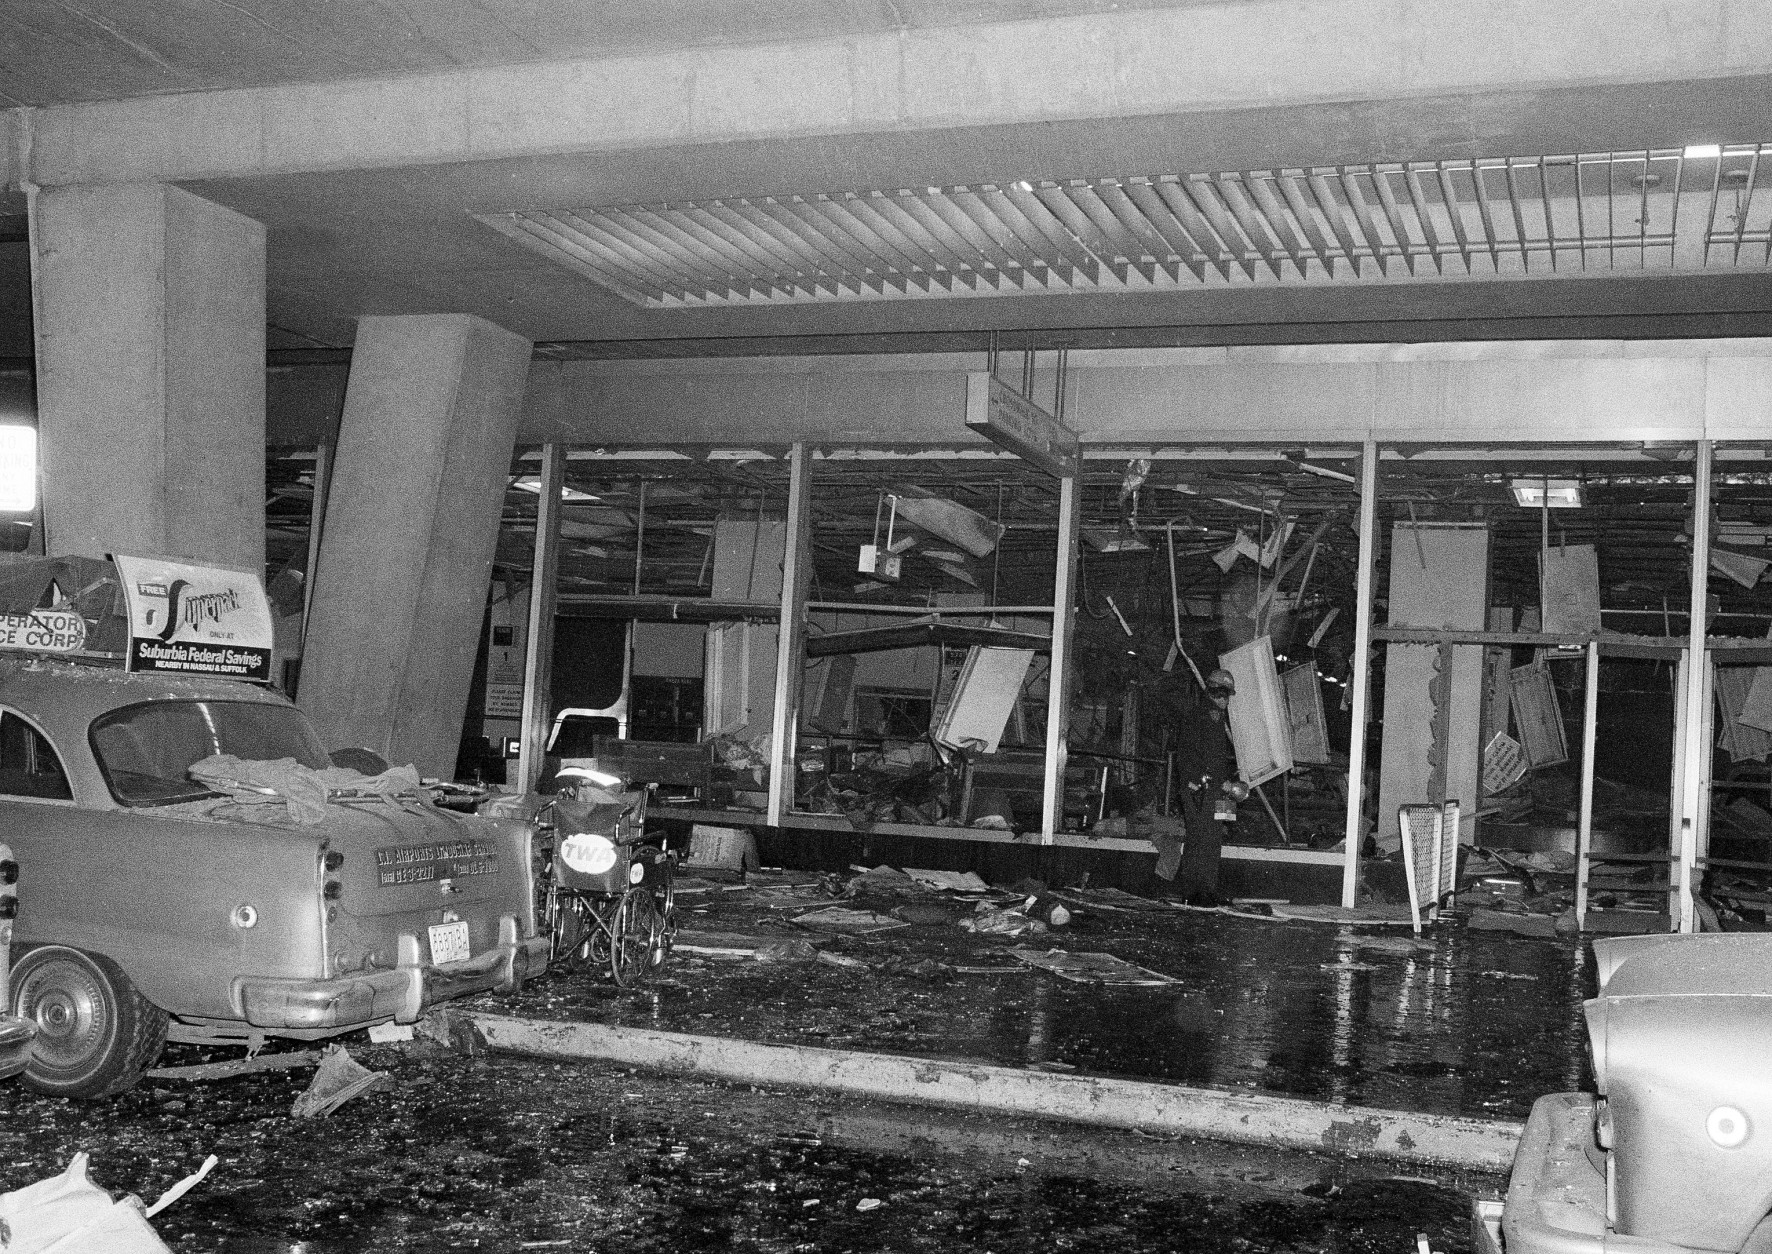 A solitary police rescue officer scans debris at New York's La Guardia Airport, Dec. 29, 1975, after a power explosion demolished a terminal baggage claim area. At least 11 persons were killed. (AP Photo)